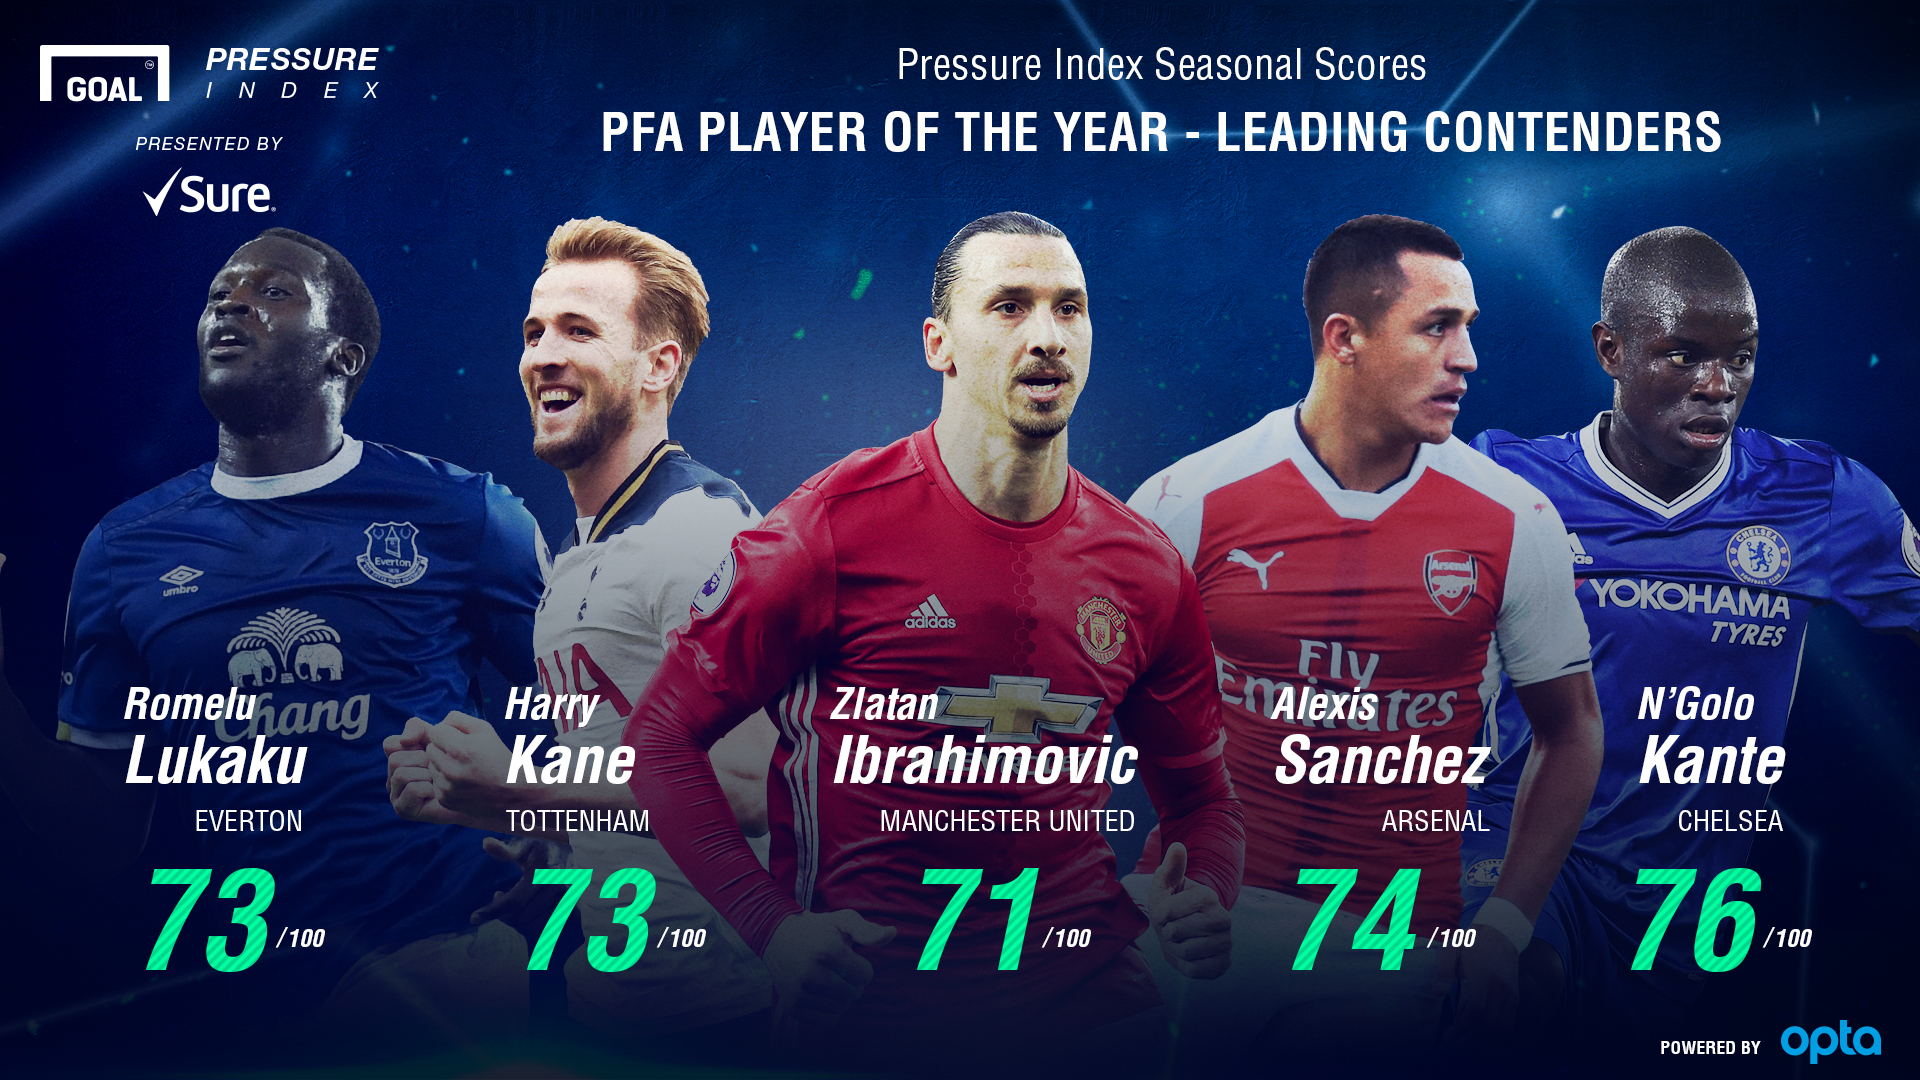 PFA Player of the Year Nominees Pressure Index